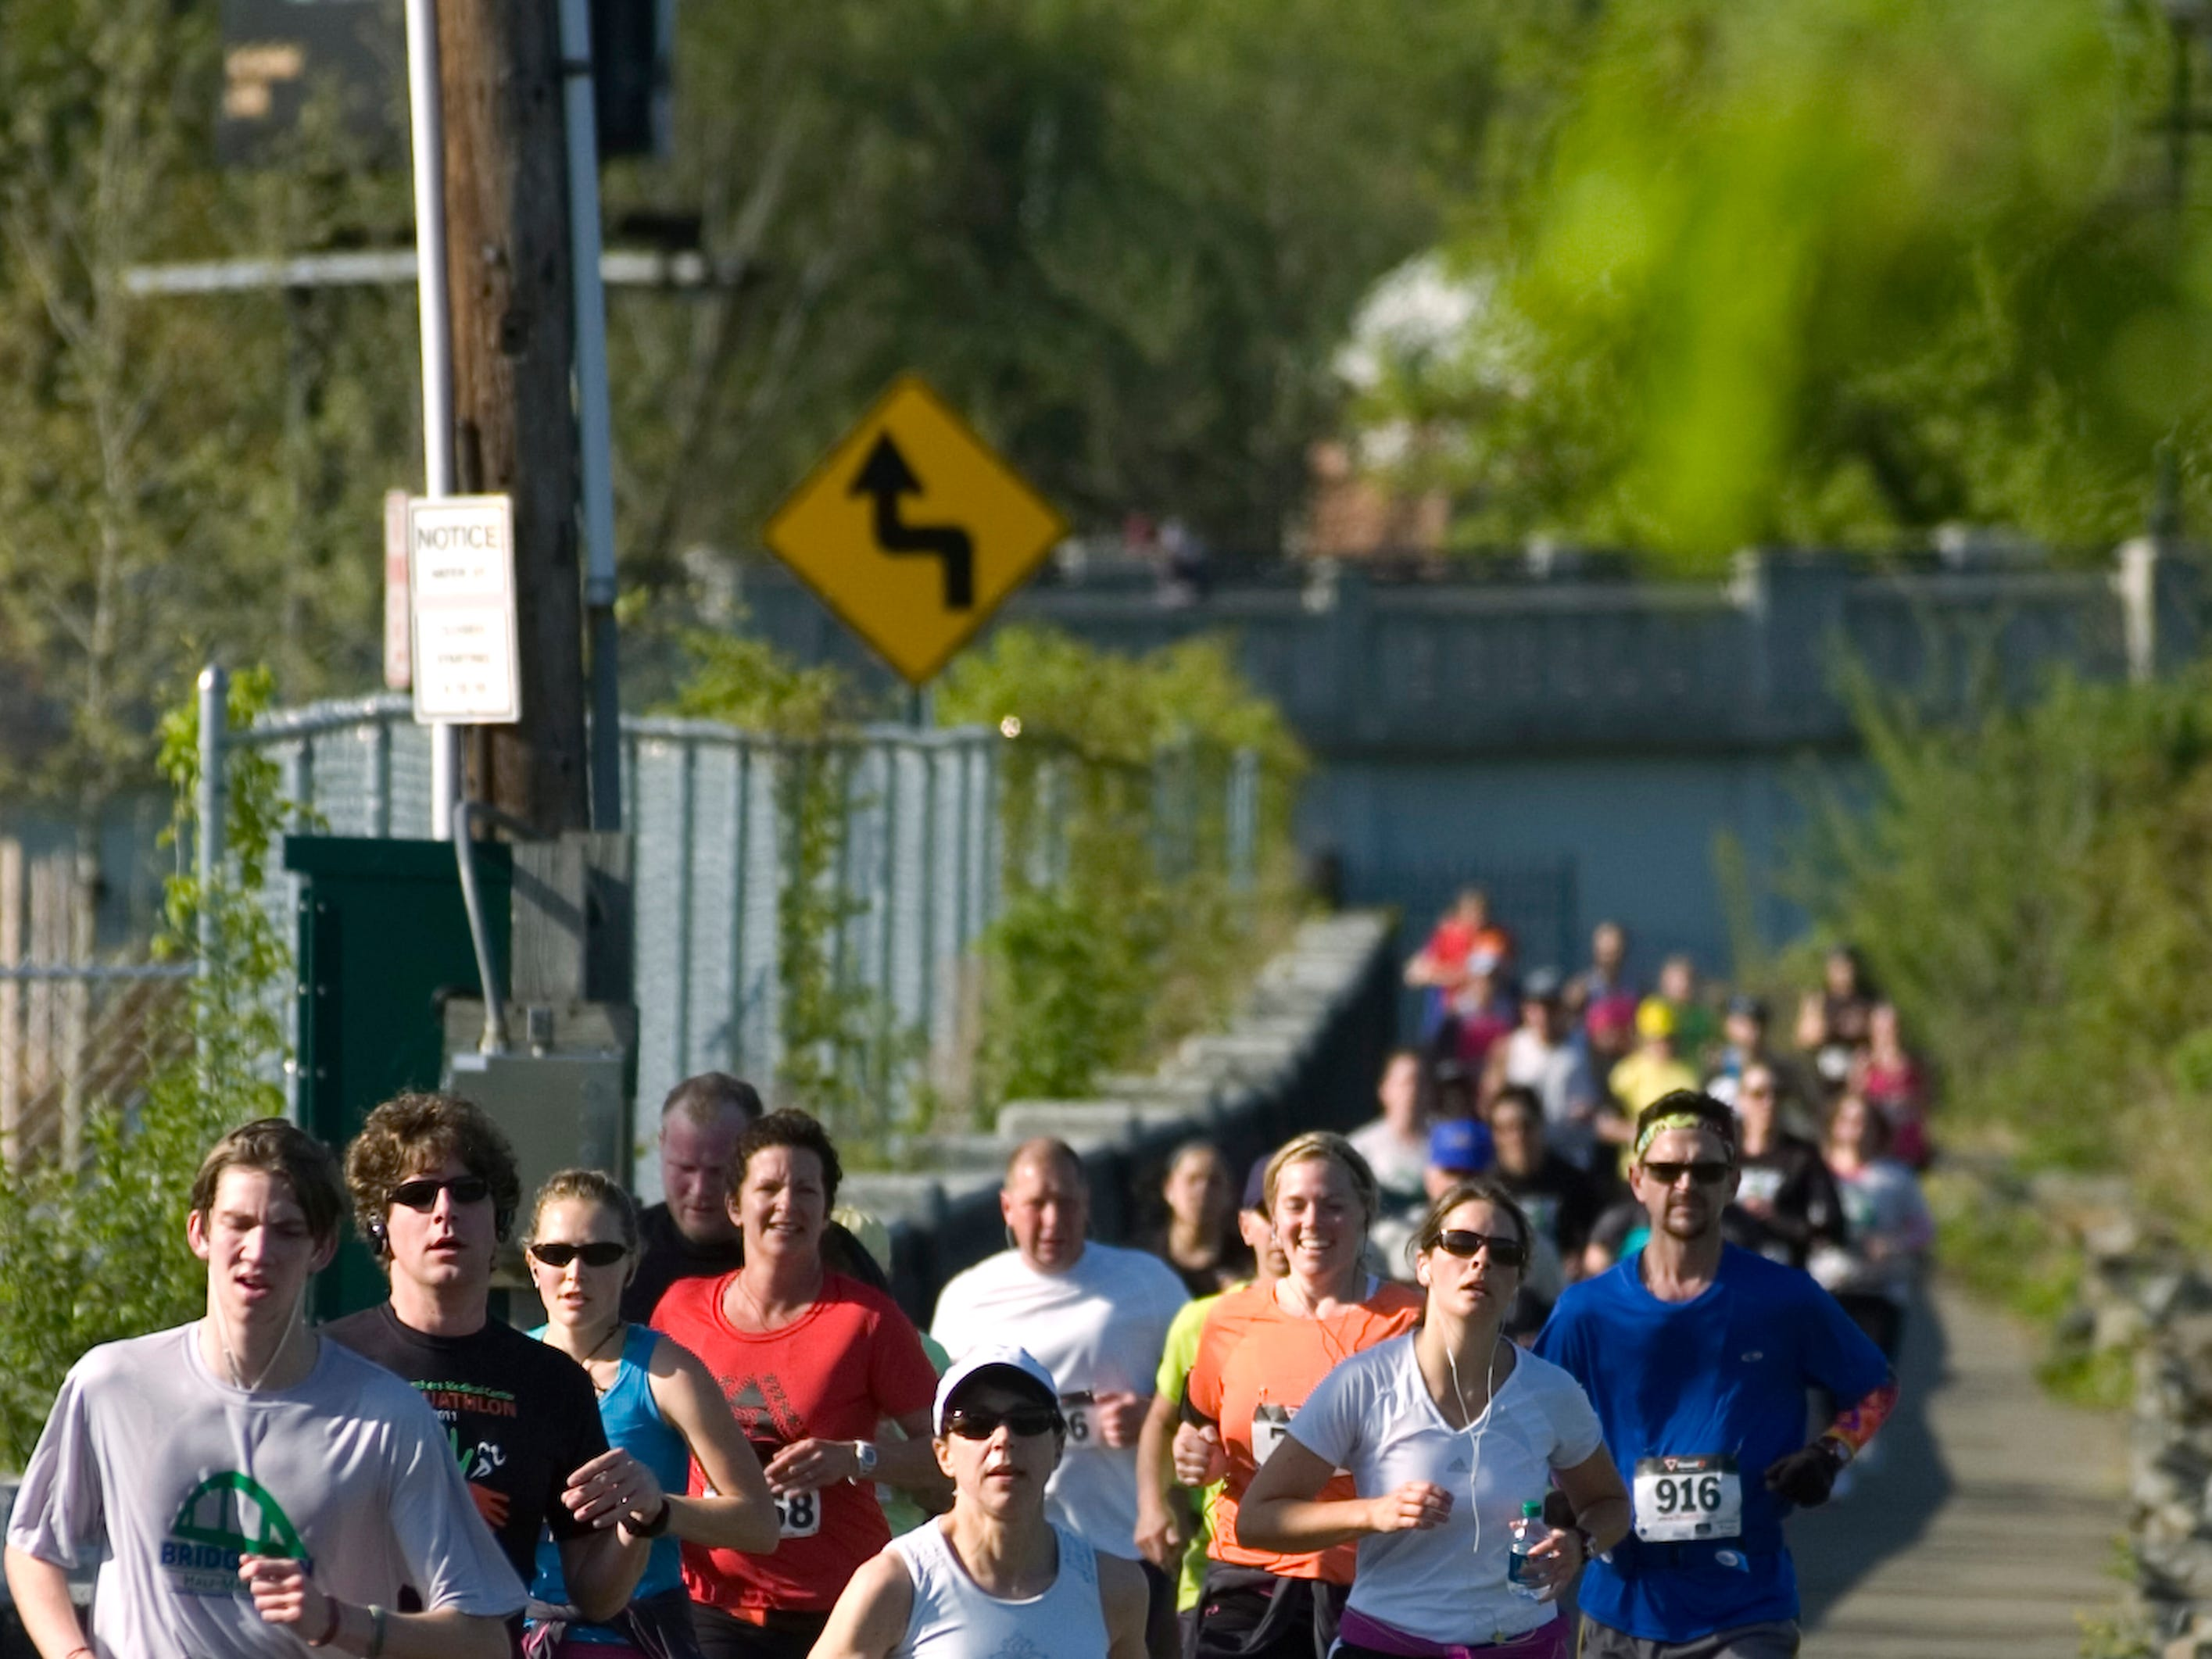 2012: Race participants make their way down the river walk during the Greater Binghamton Chamber of Commerce Bridge Run half-marathon on Sunday morning in downtown Binghamton.